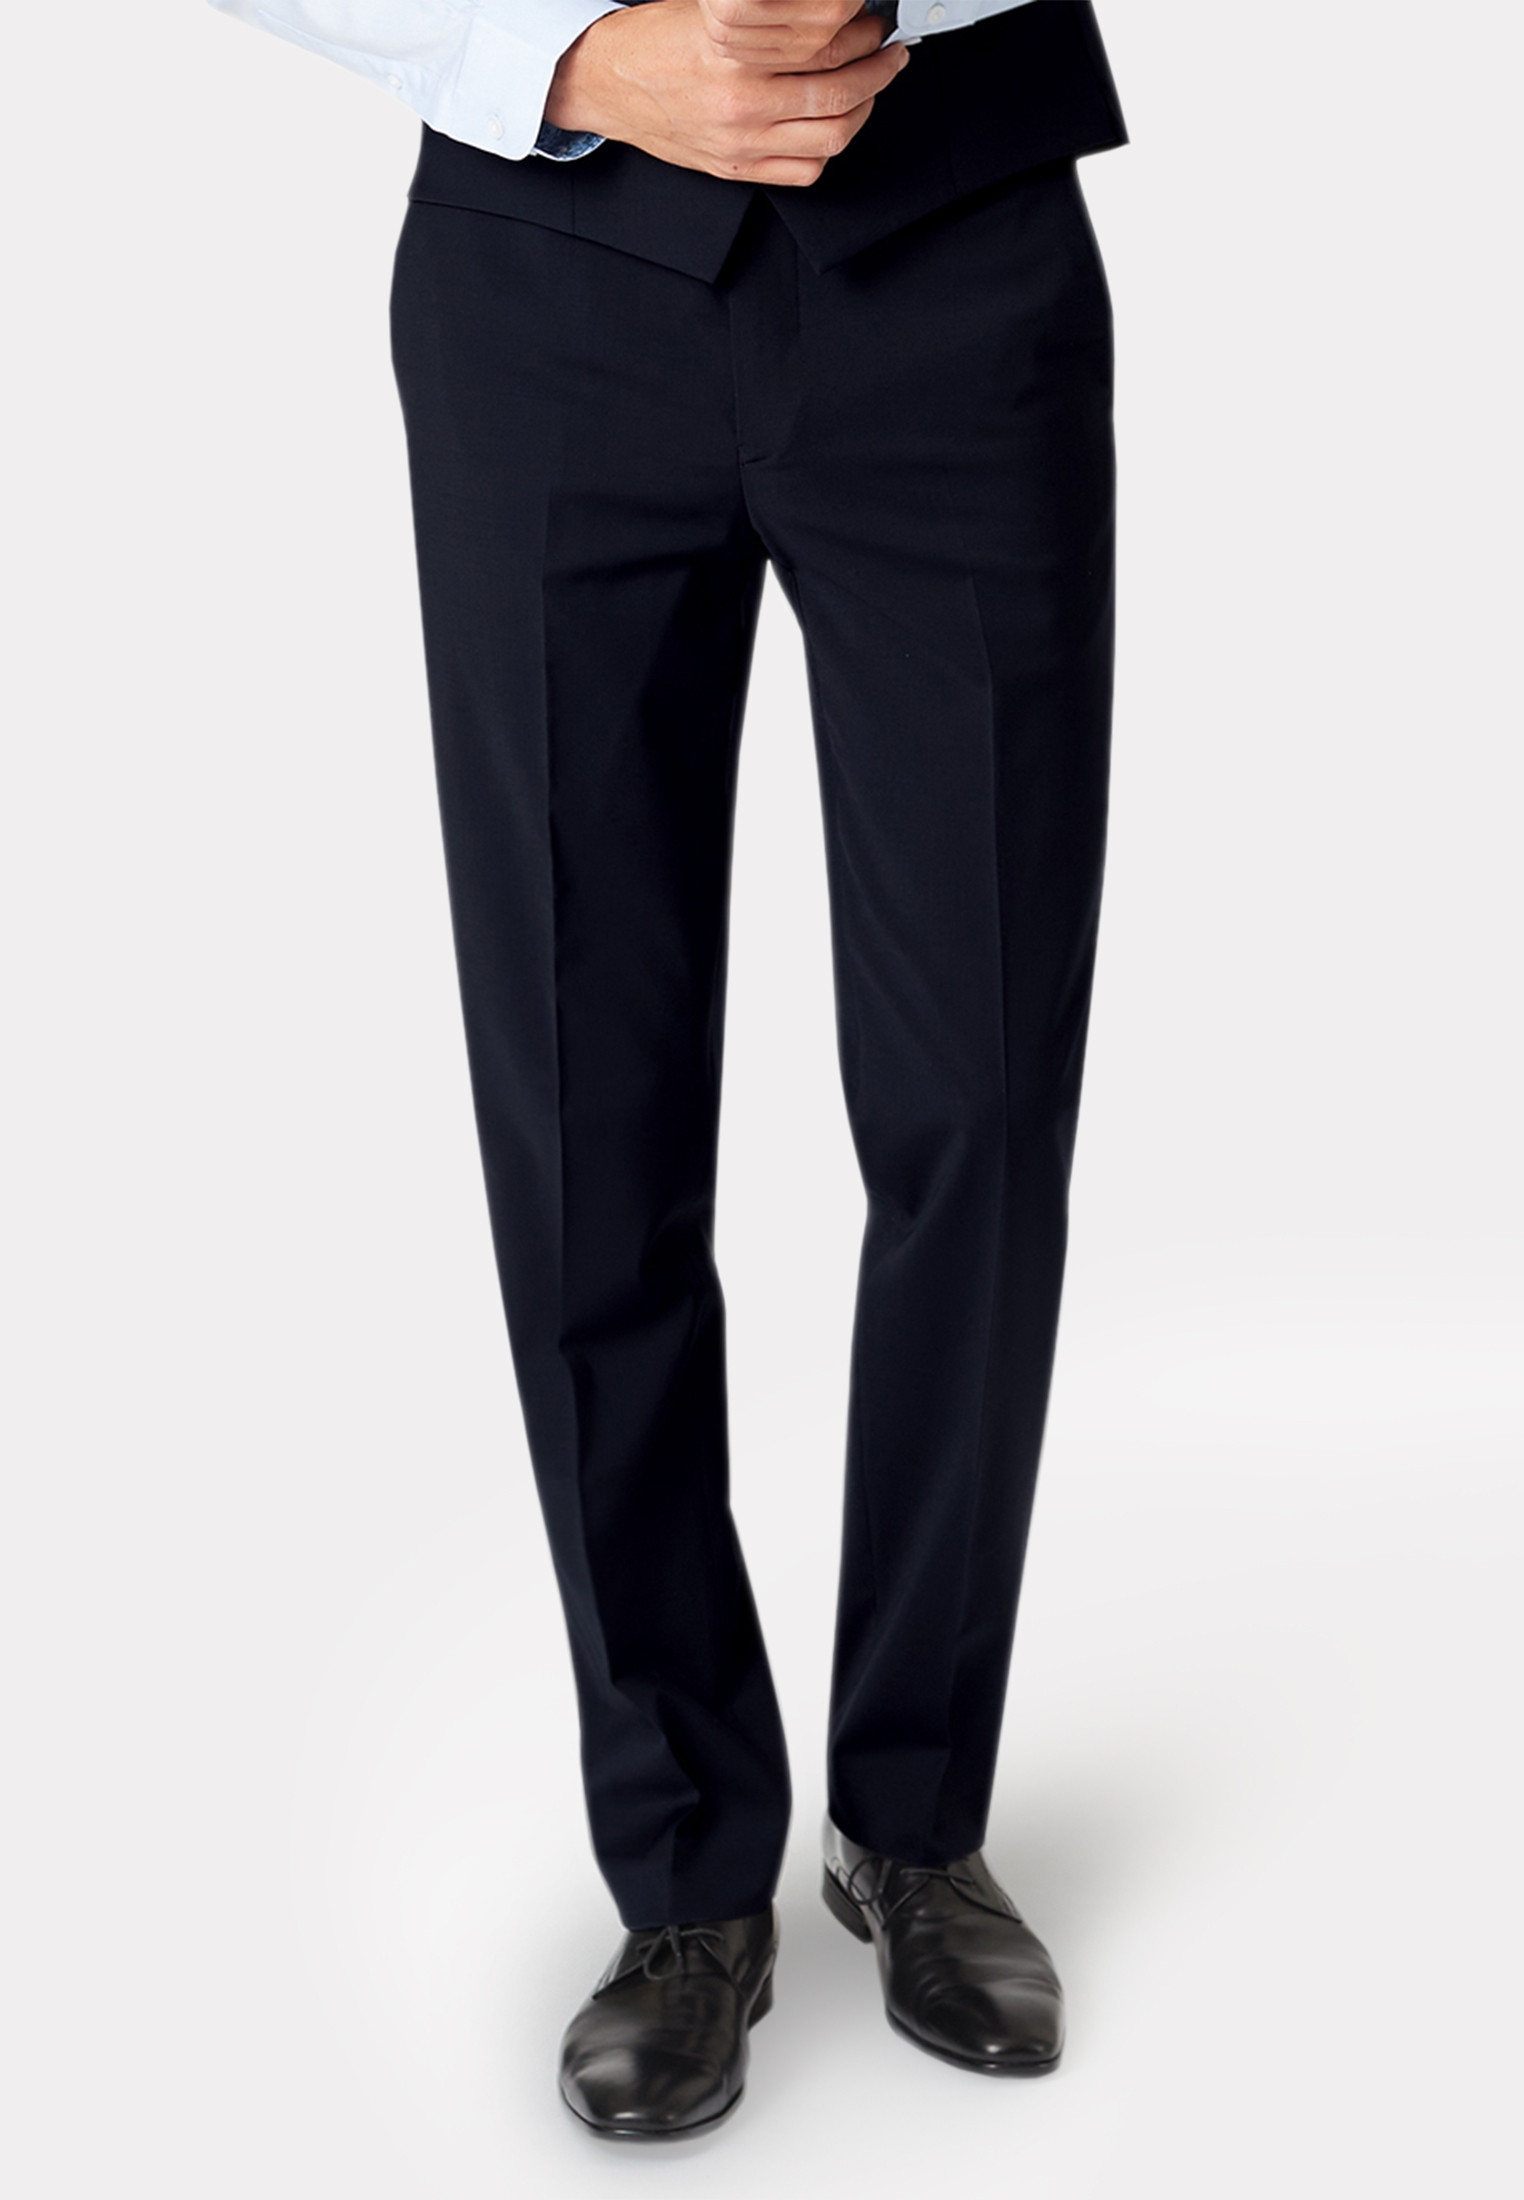 Black Cassino Tailored Fit Washable Suit Trousers